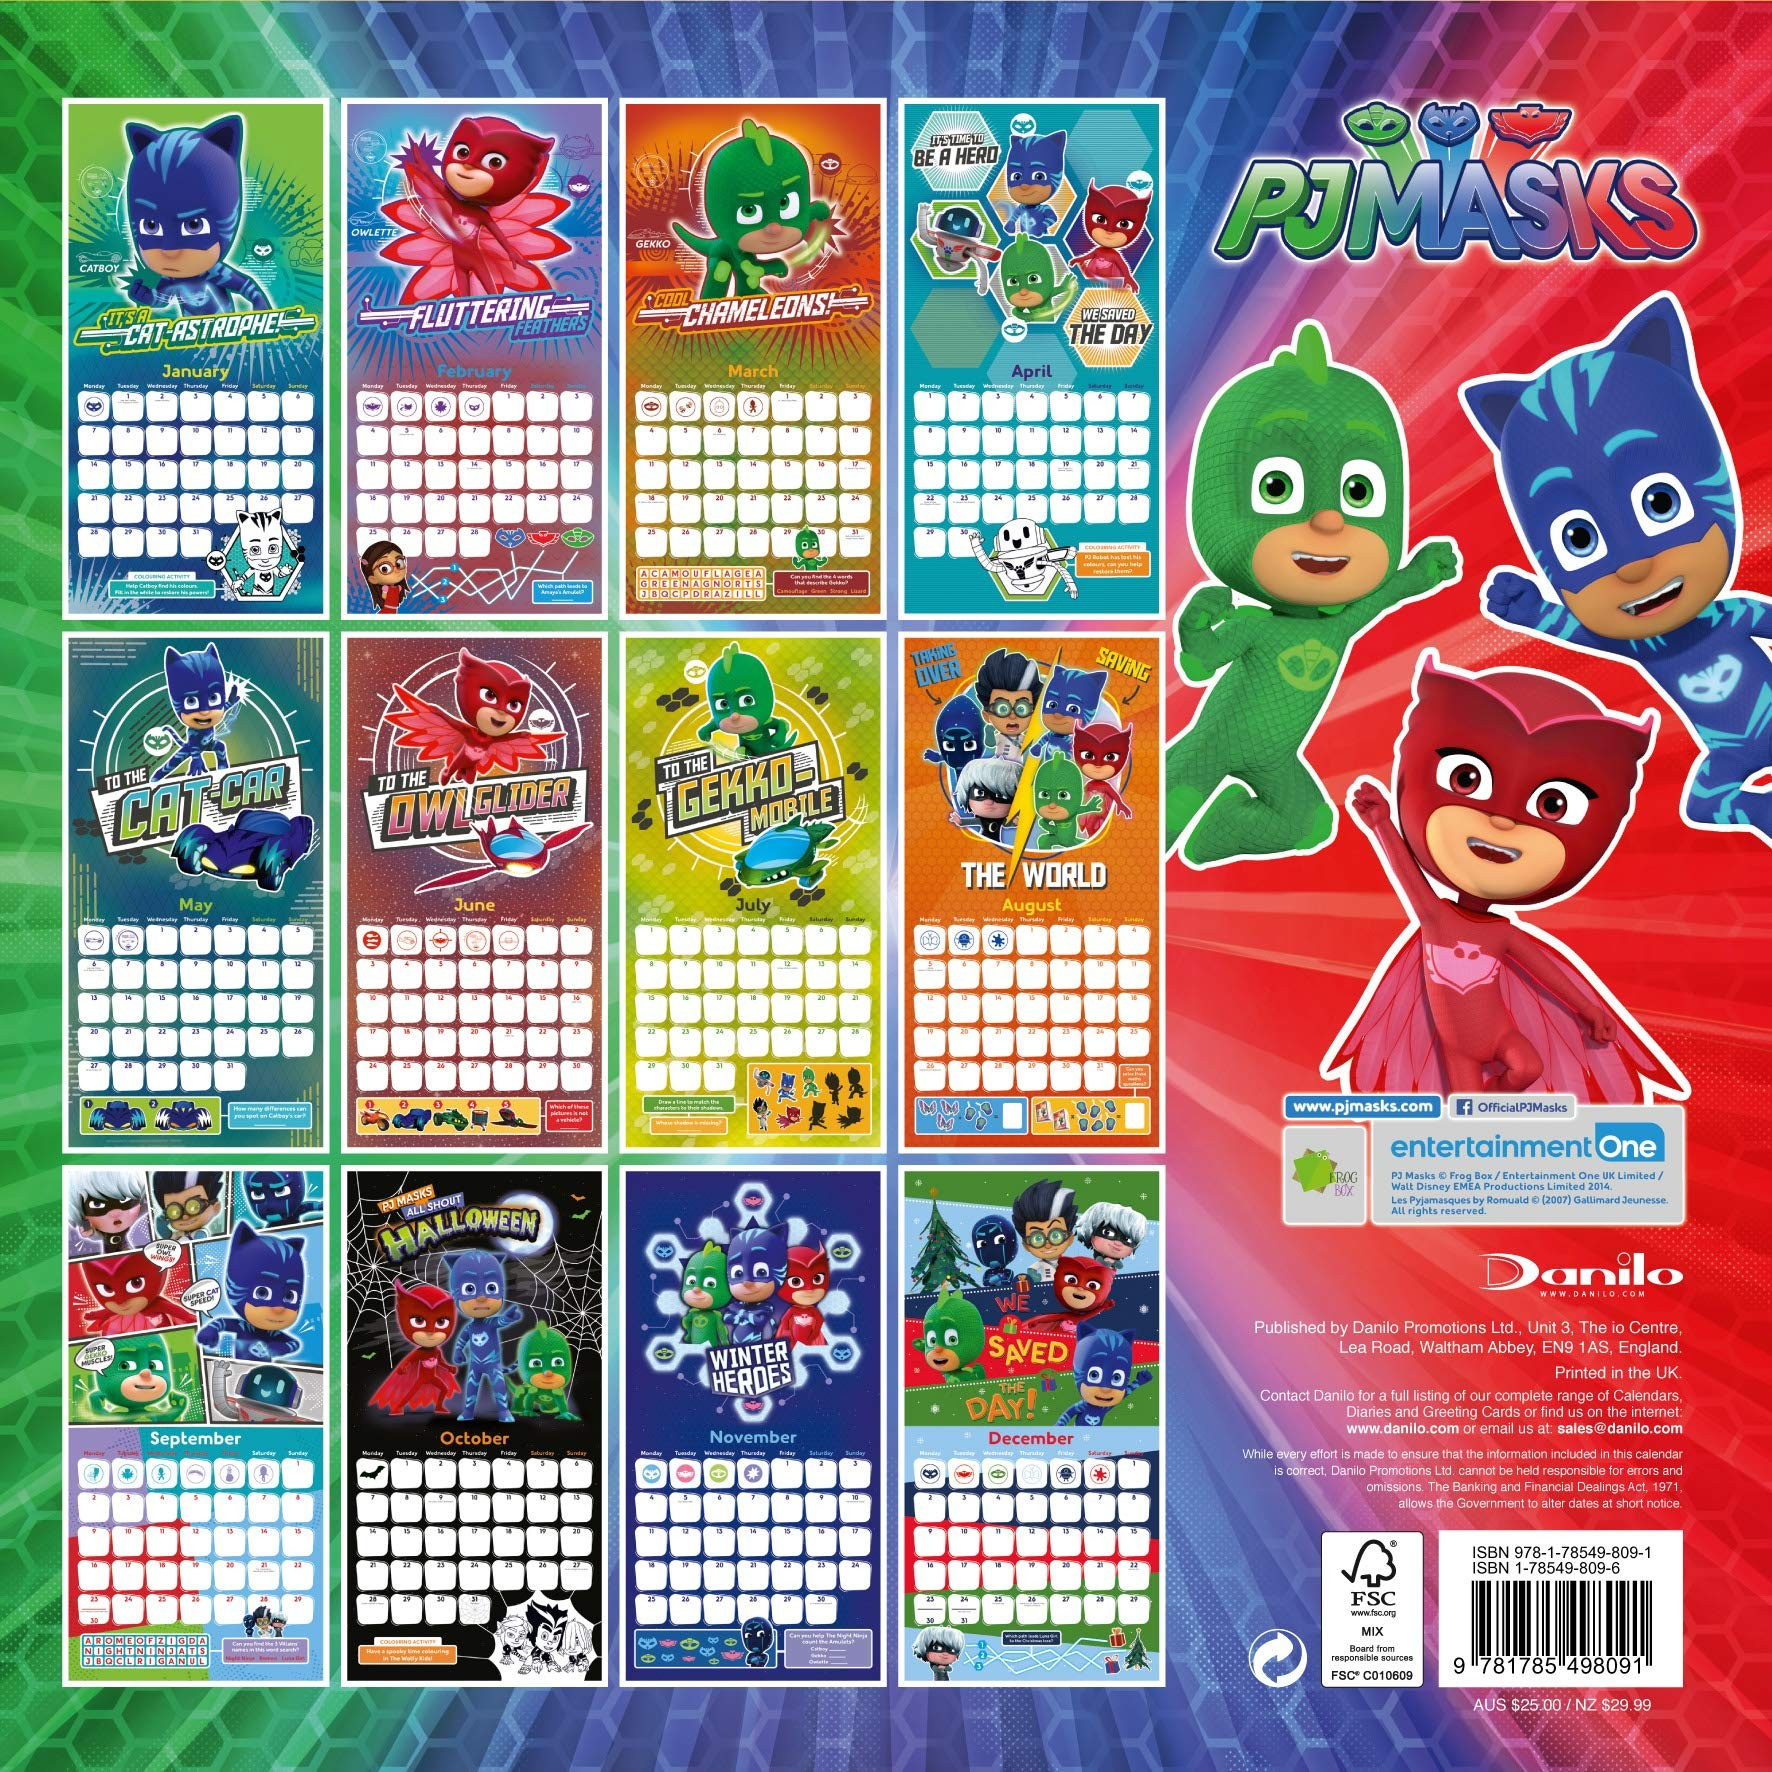 Calendario 2019 Mexico Más Reciente Pj Masks Ficial 2019 Calendar Square Wall Calendar format Of Calendario 2019 Mexico Más Reciente Pj Masks Ficial 2019 Calendar Square Wall Calendar format